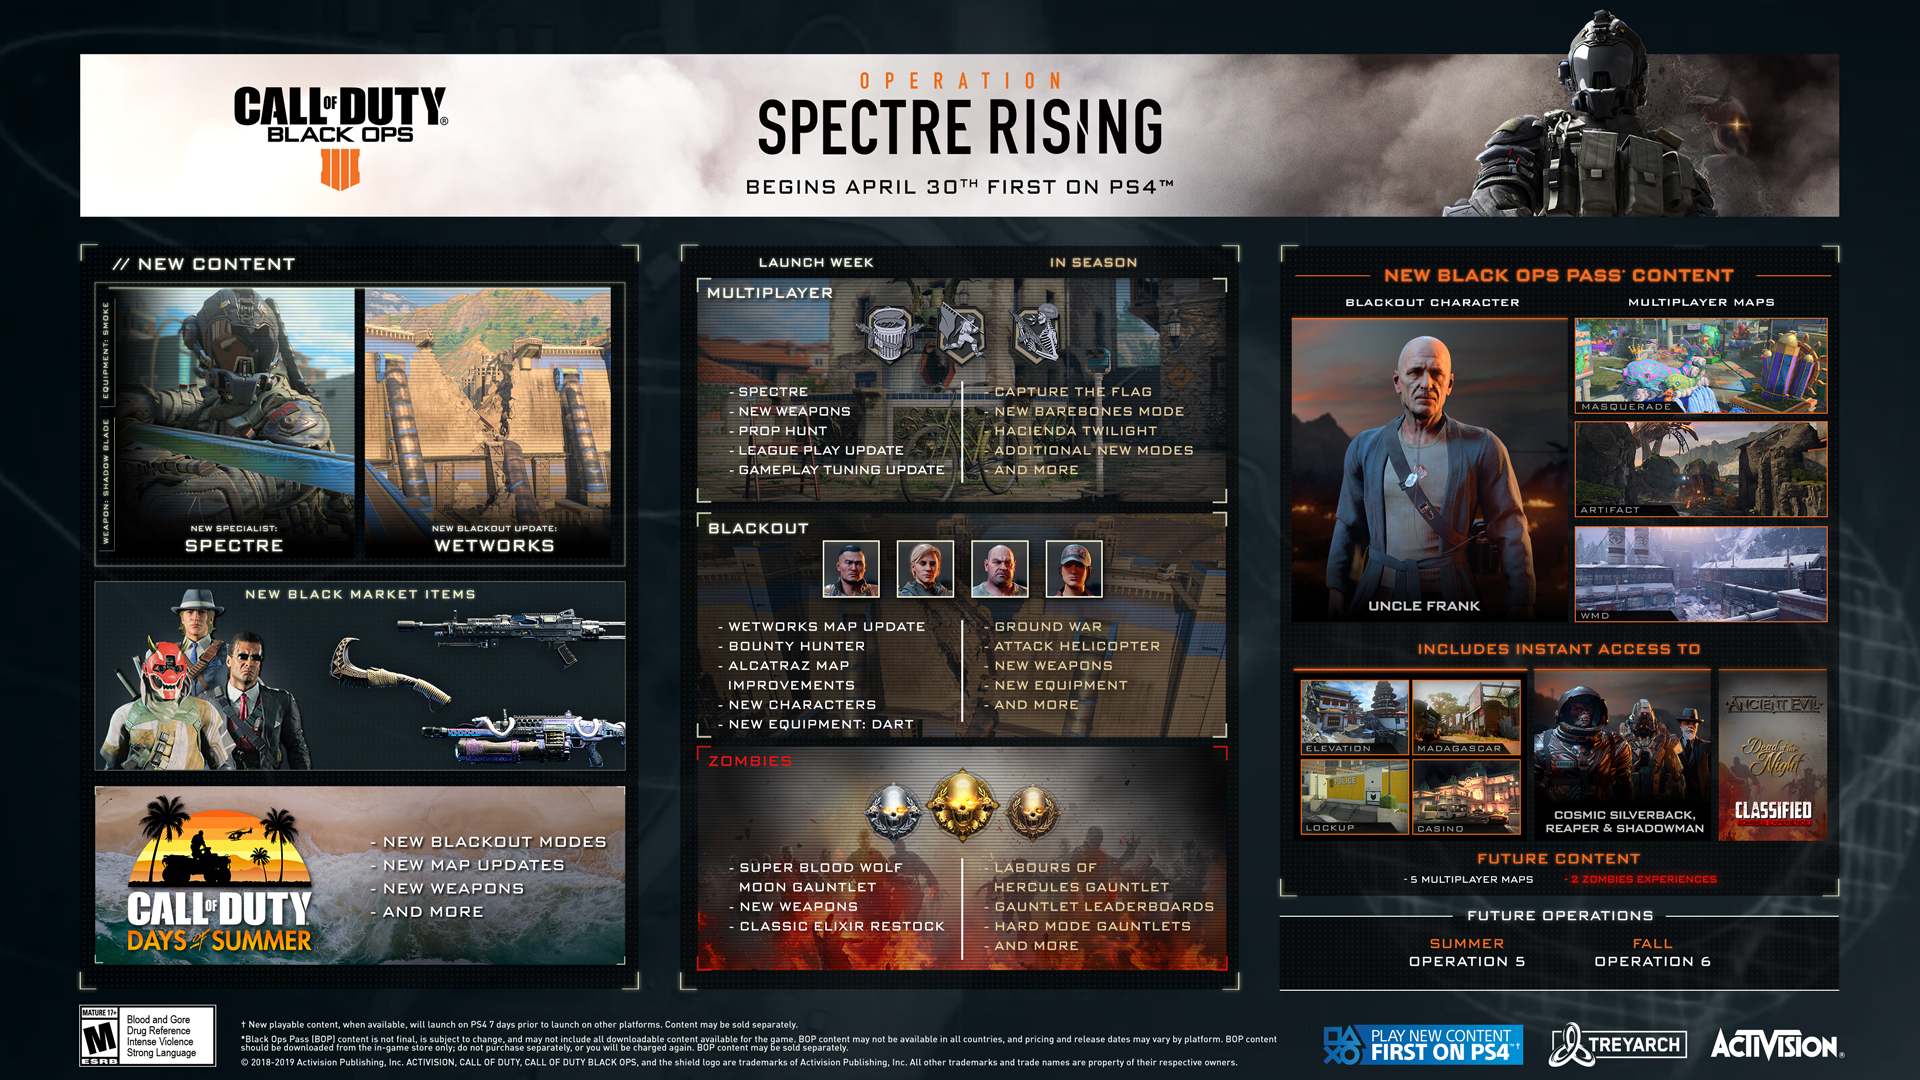 Operation Spectre Rising Begins April 30th on PS4